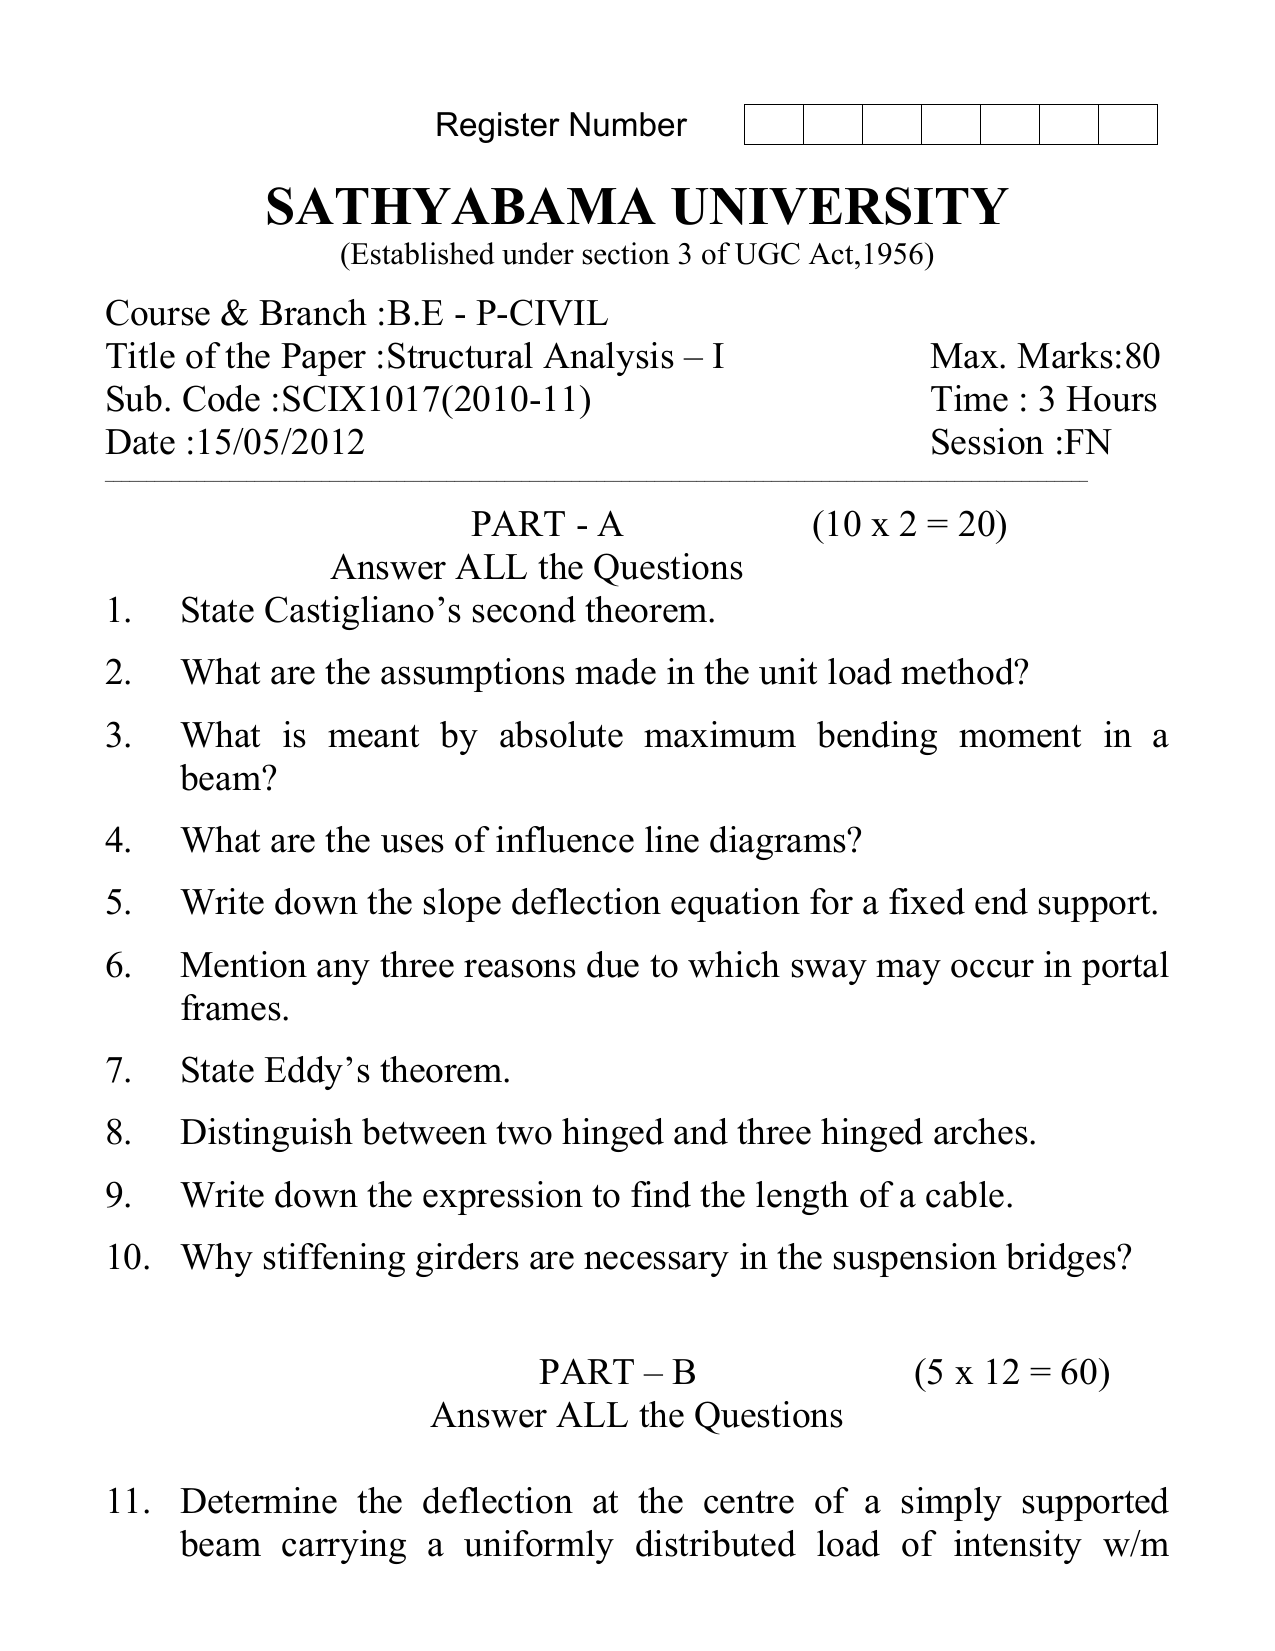 Sathyabama University Tutorial On How To Calculate Shear Force In Beams Bending